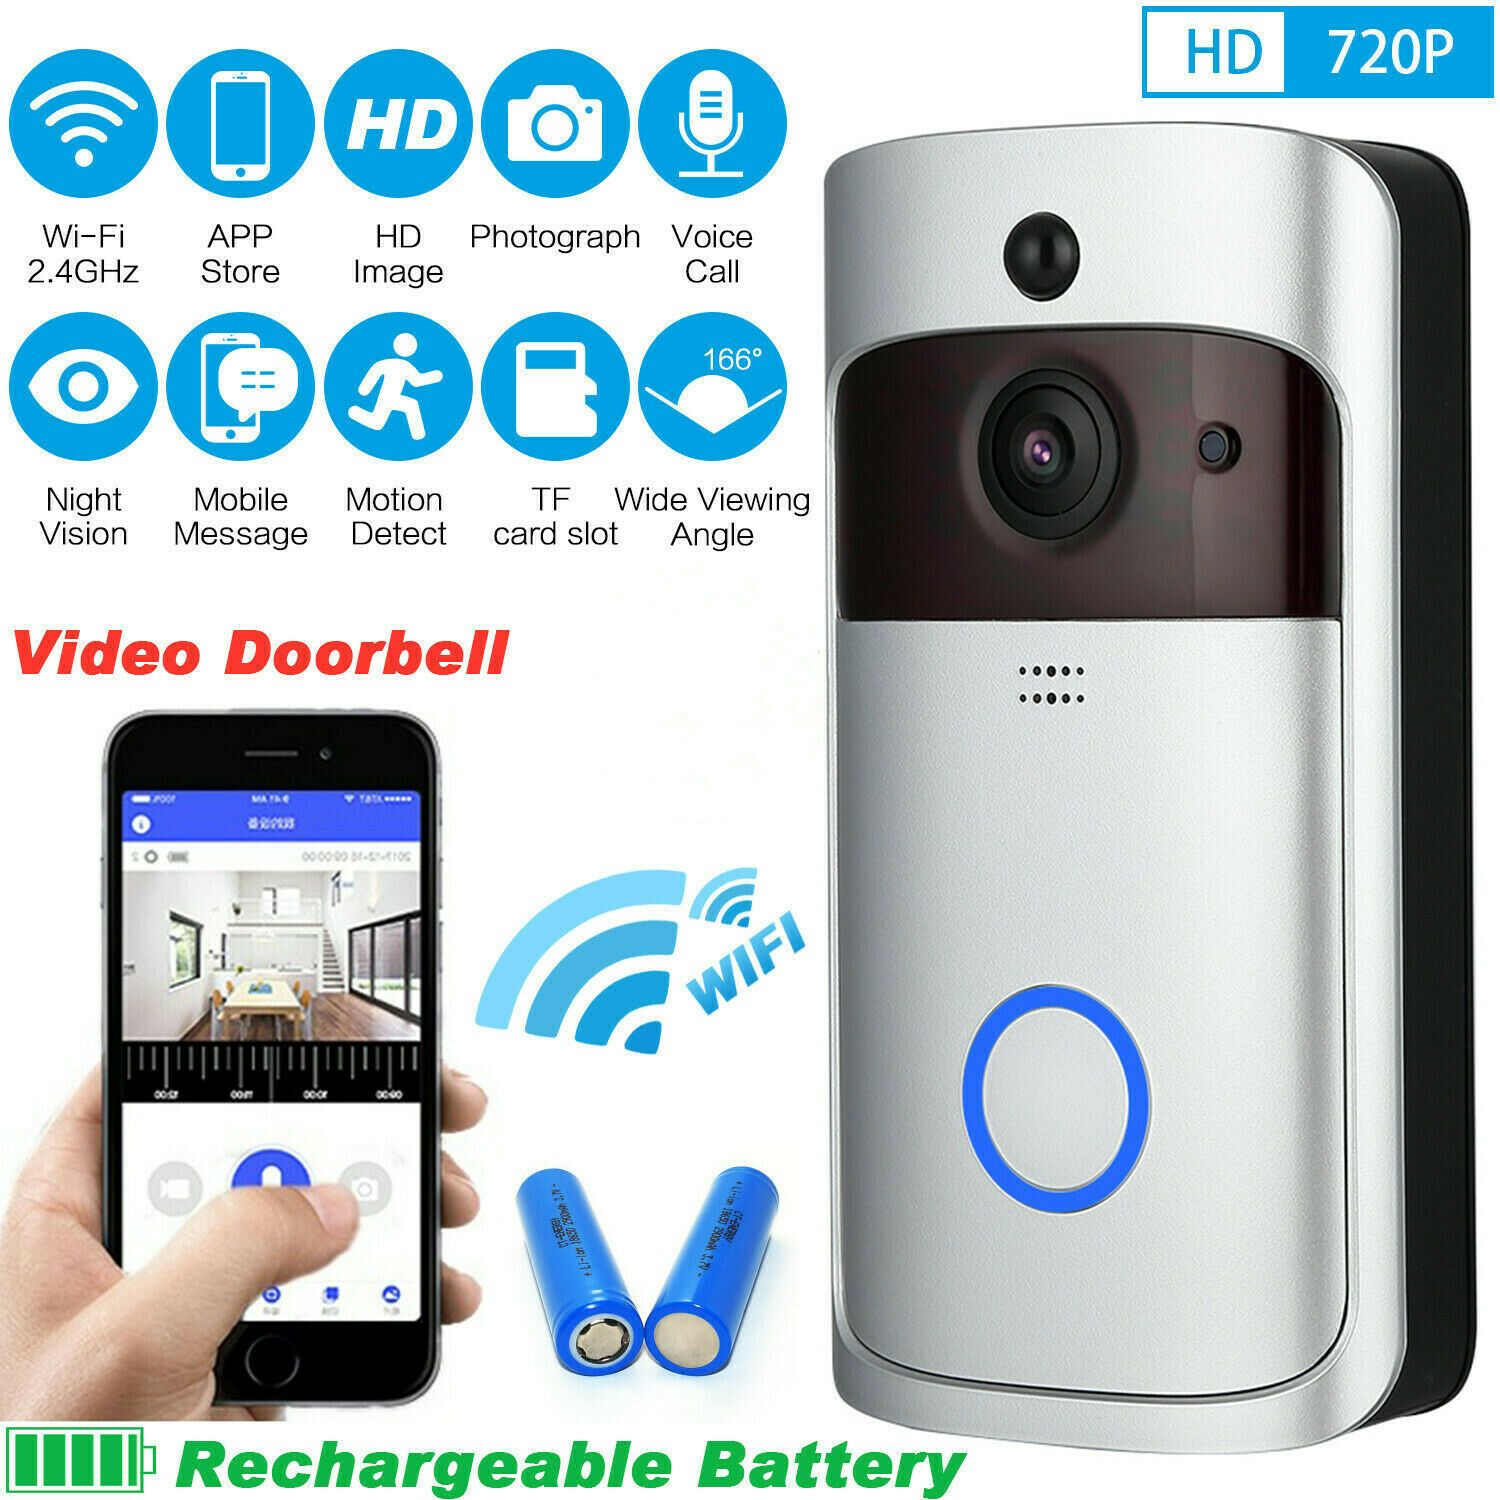 Turklingel Mit Kamera Hd Wlan Nachtsicht Video Funkklingel Funk Ring Doorbell Kamera Ideas Of Kamera Kamera Store Image Wifi Phone